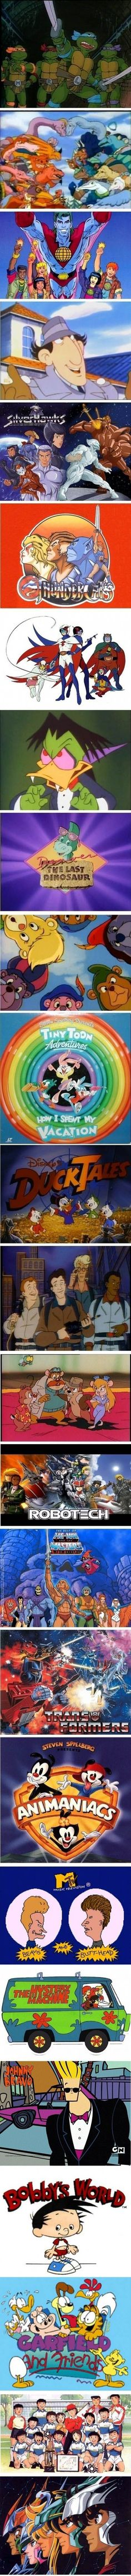 80's and 90's cartoons